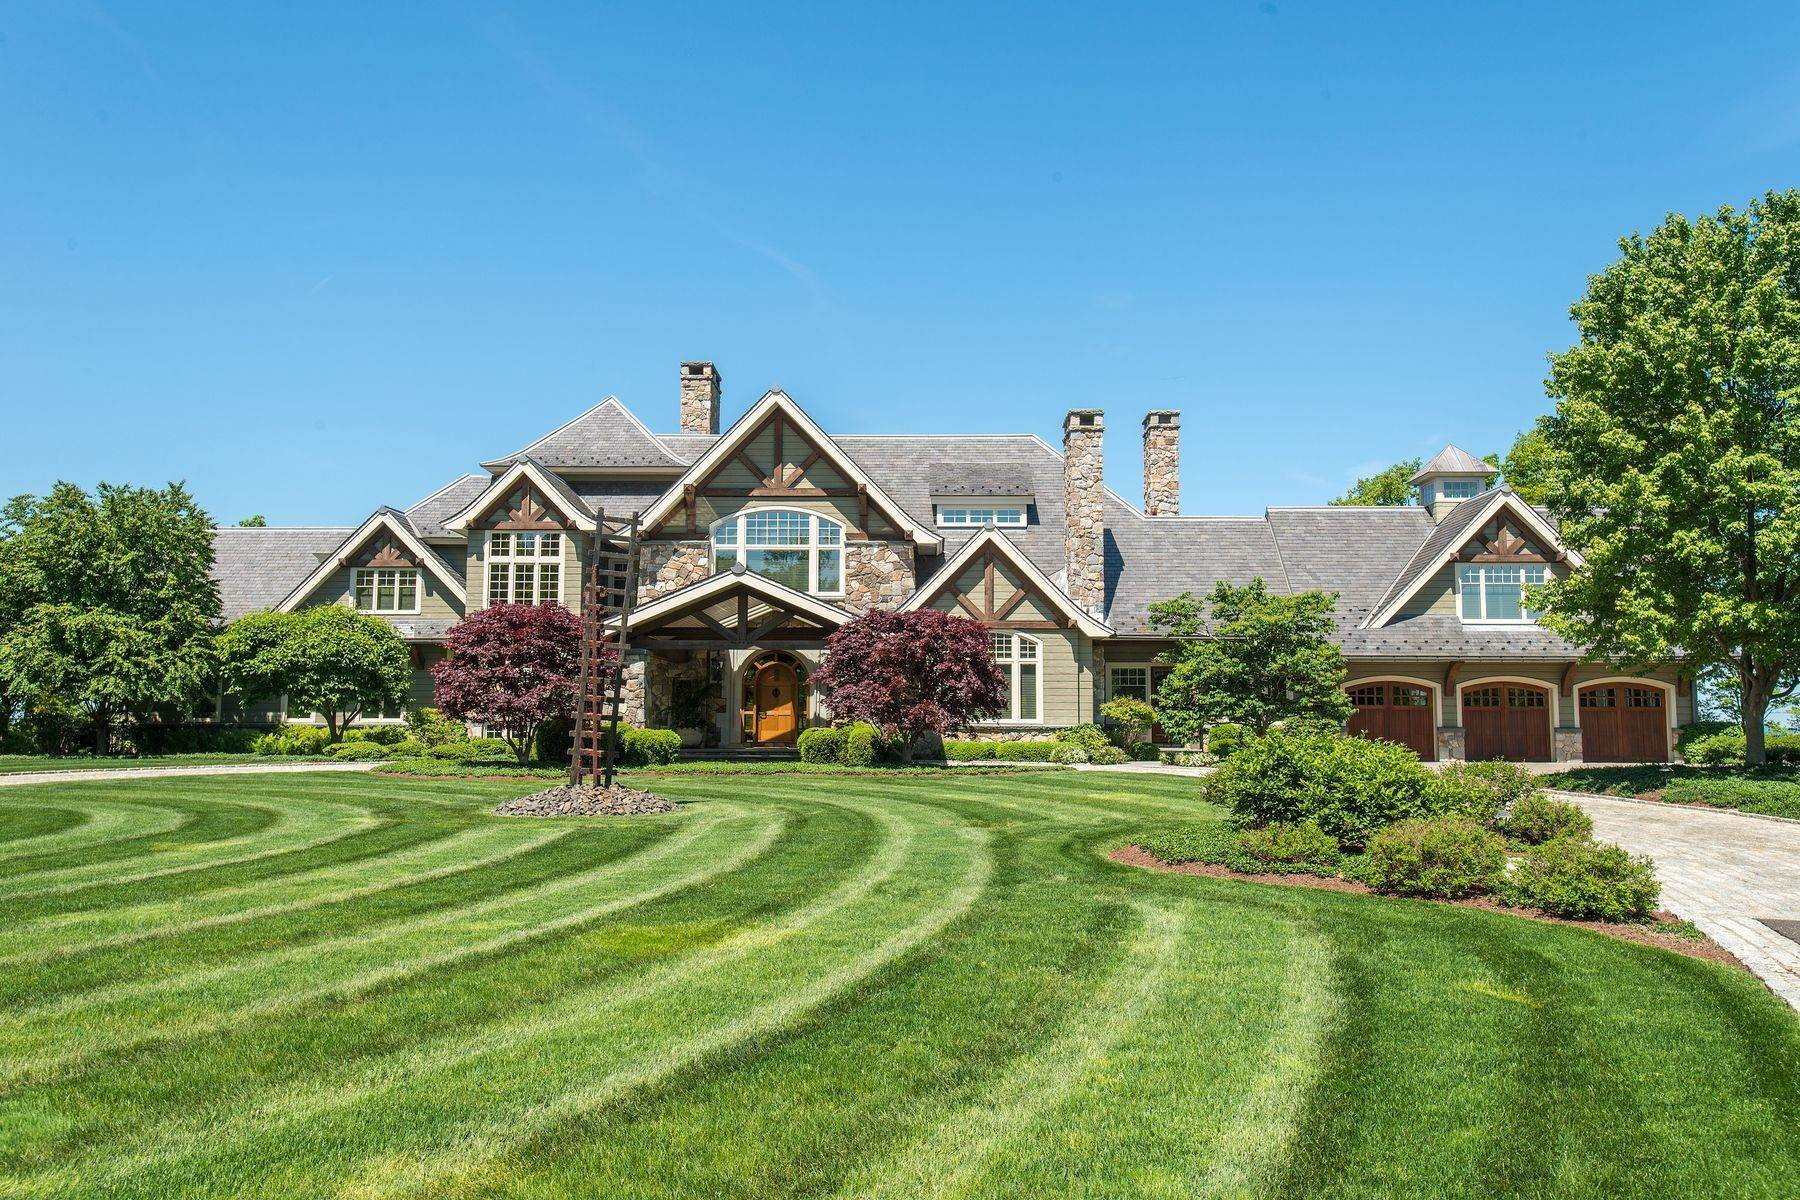 Vineyard Real Estate for Sale at 7-11 Old Stagecoach Road & 40 Neds Lane Ridgefield, Connecticut 06877 United States